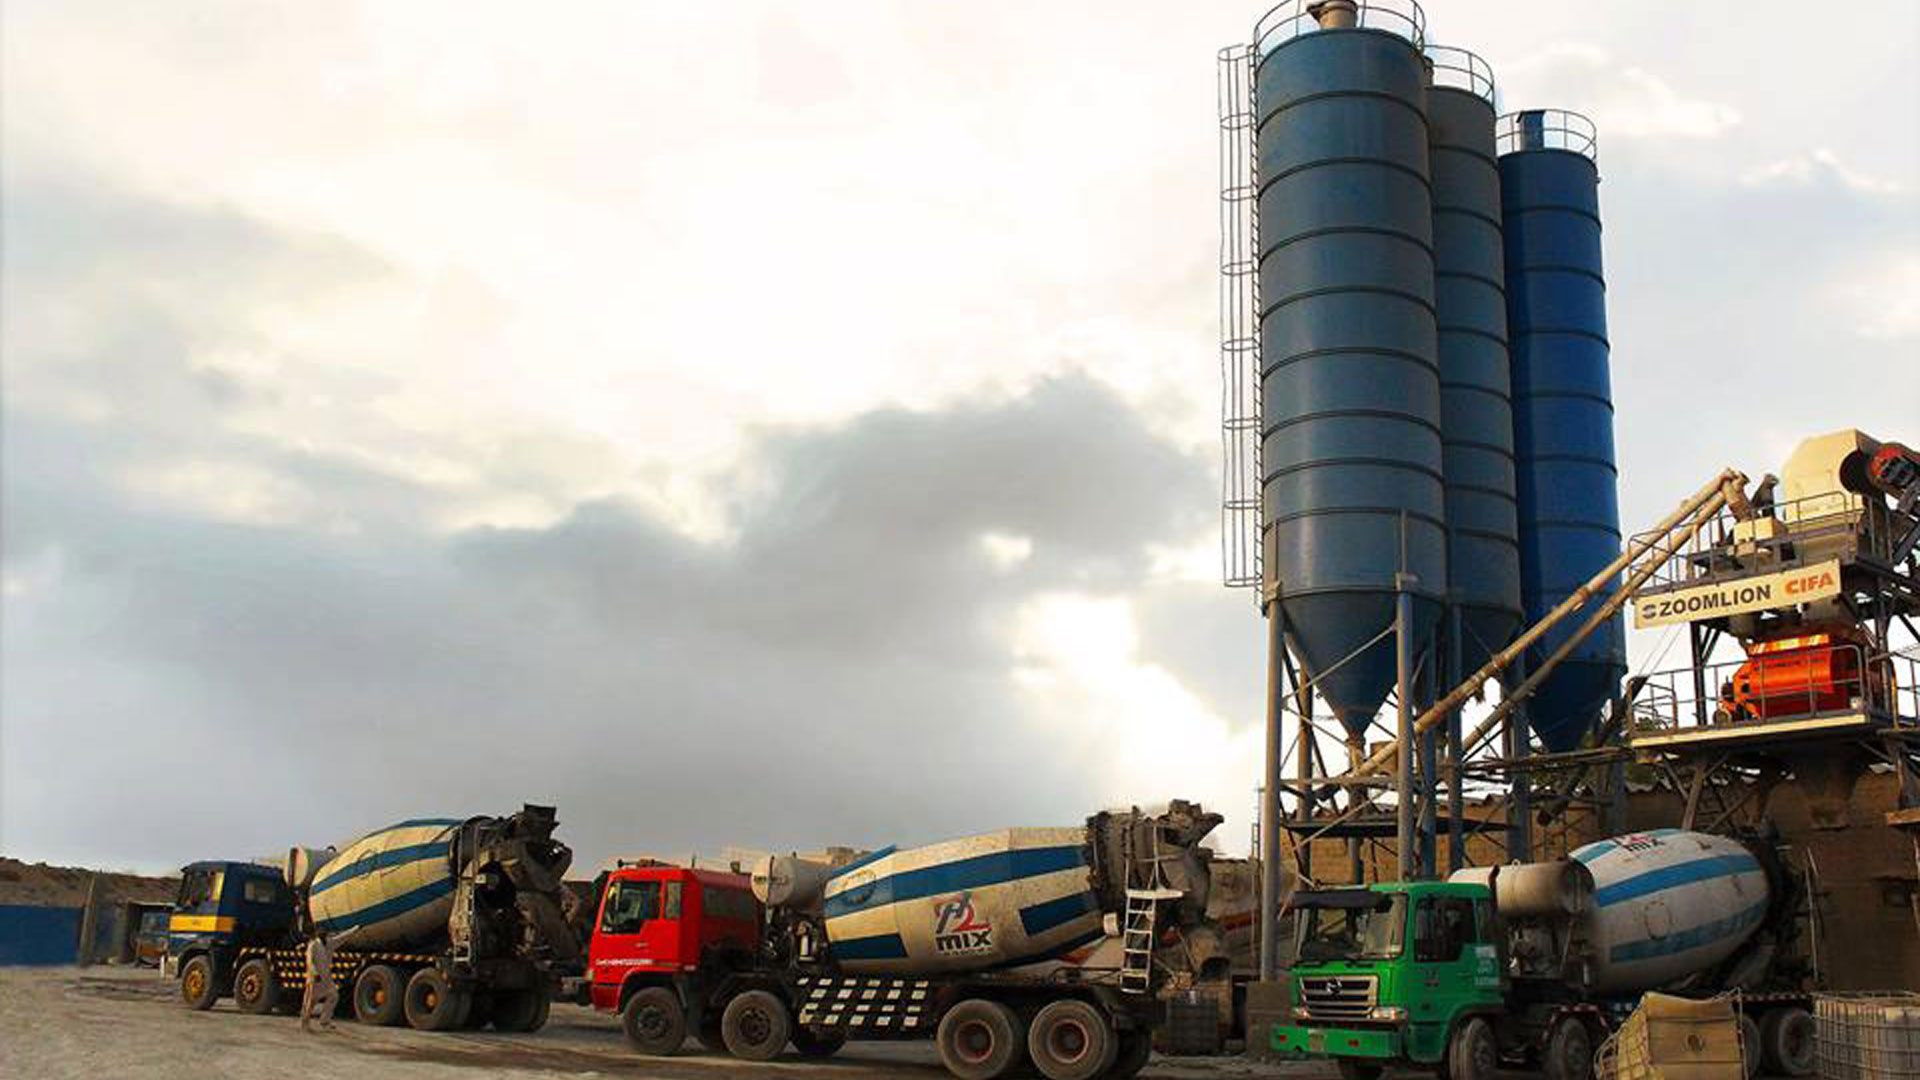 H2 Ready Mix, Concrete Ready Mixed Manufacturers & Suppliers in Karachi, Pakistan.